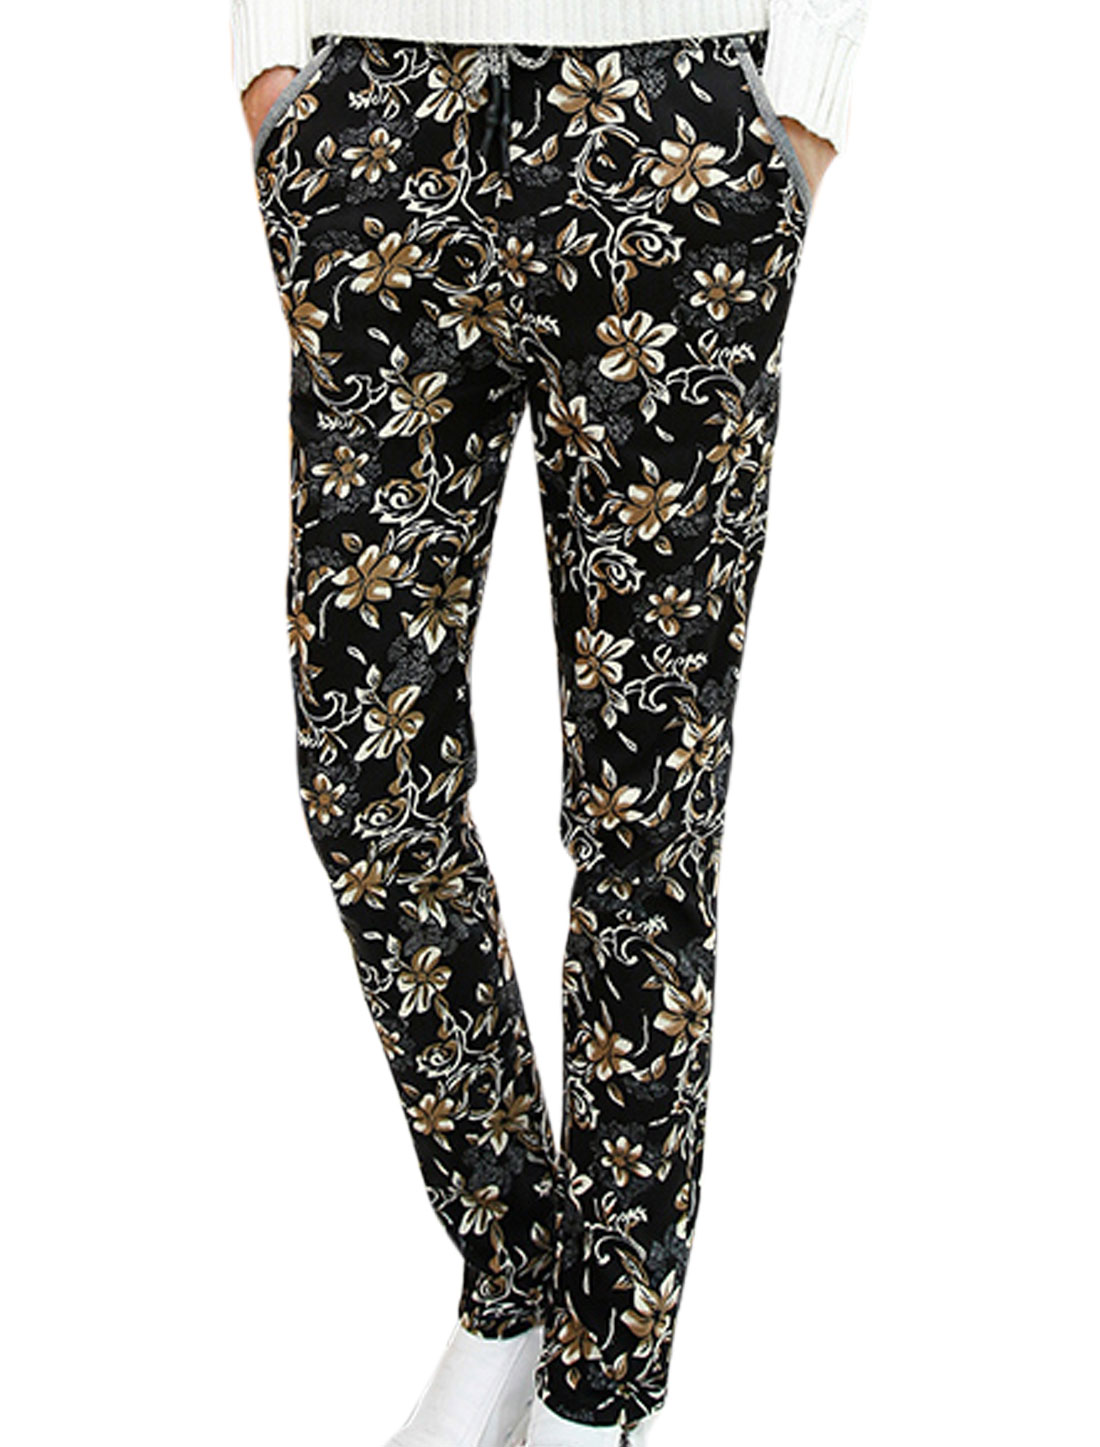 Men Patch Back Pockets All Over Floral Print Casual Pants Black W30